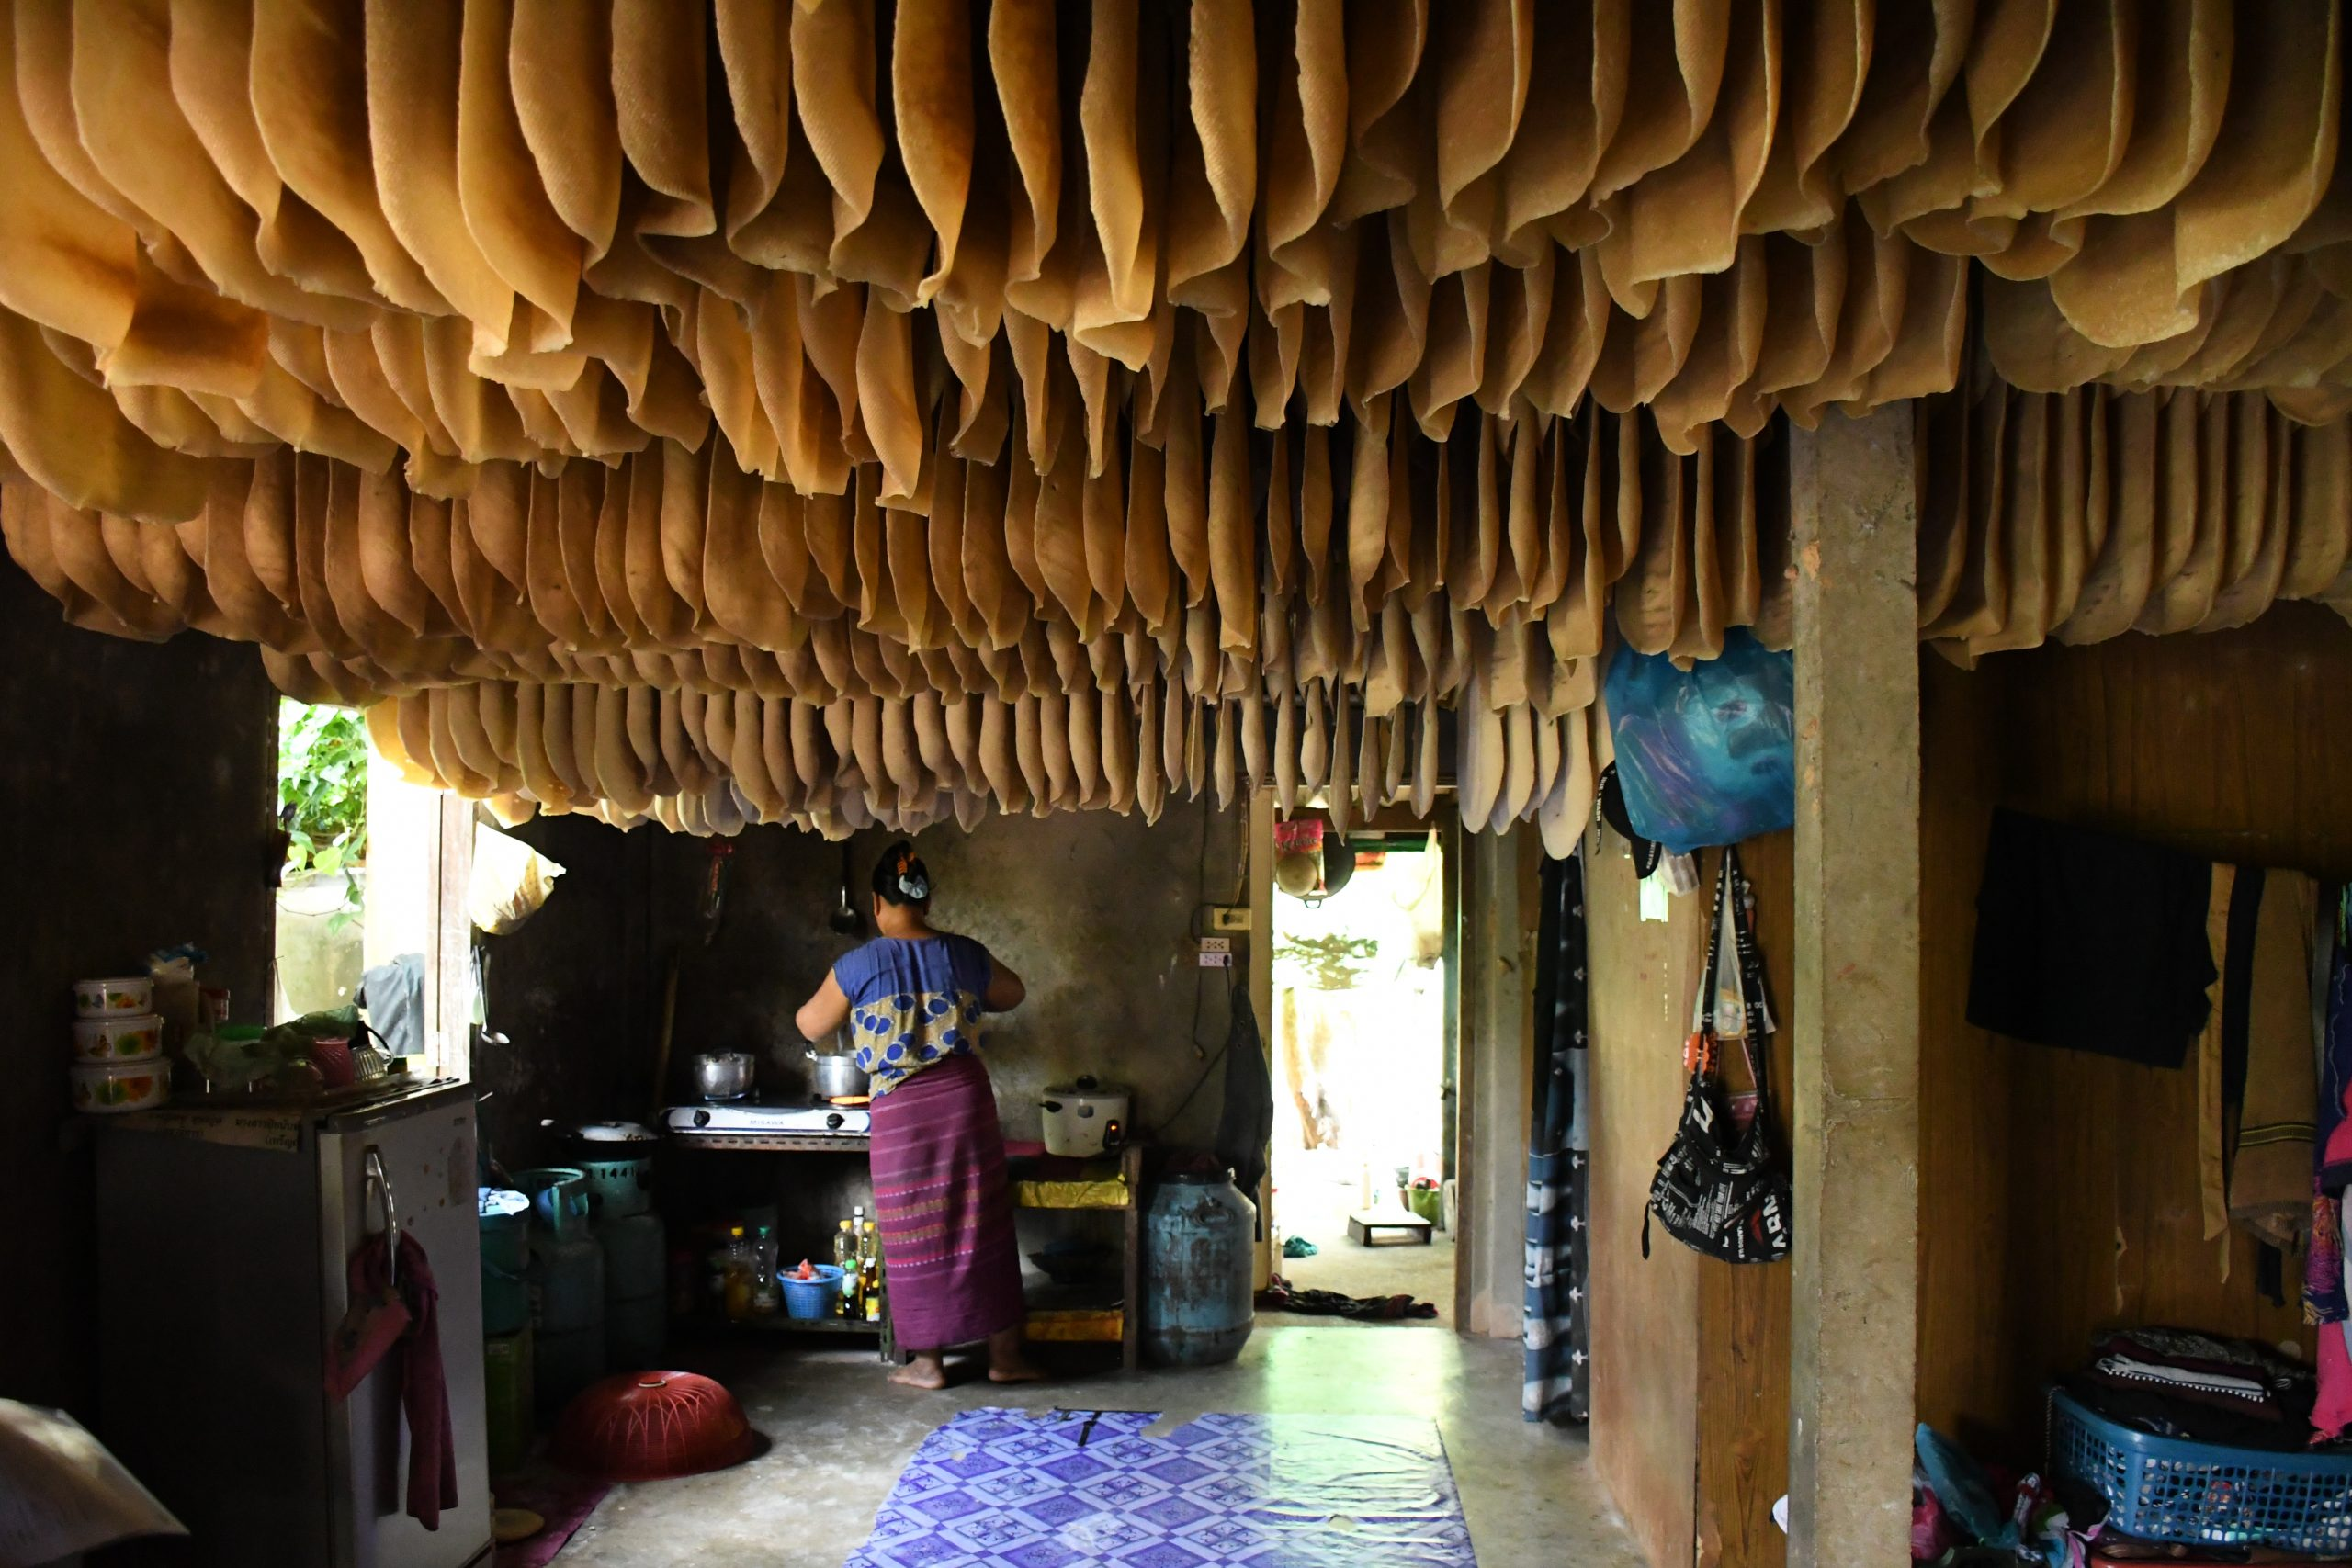 A migrant worker's house near a rubber plantation in Surat Thani, Thailand (Photo: Raks Thai Foundation)